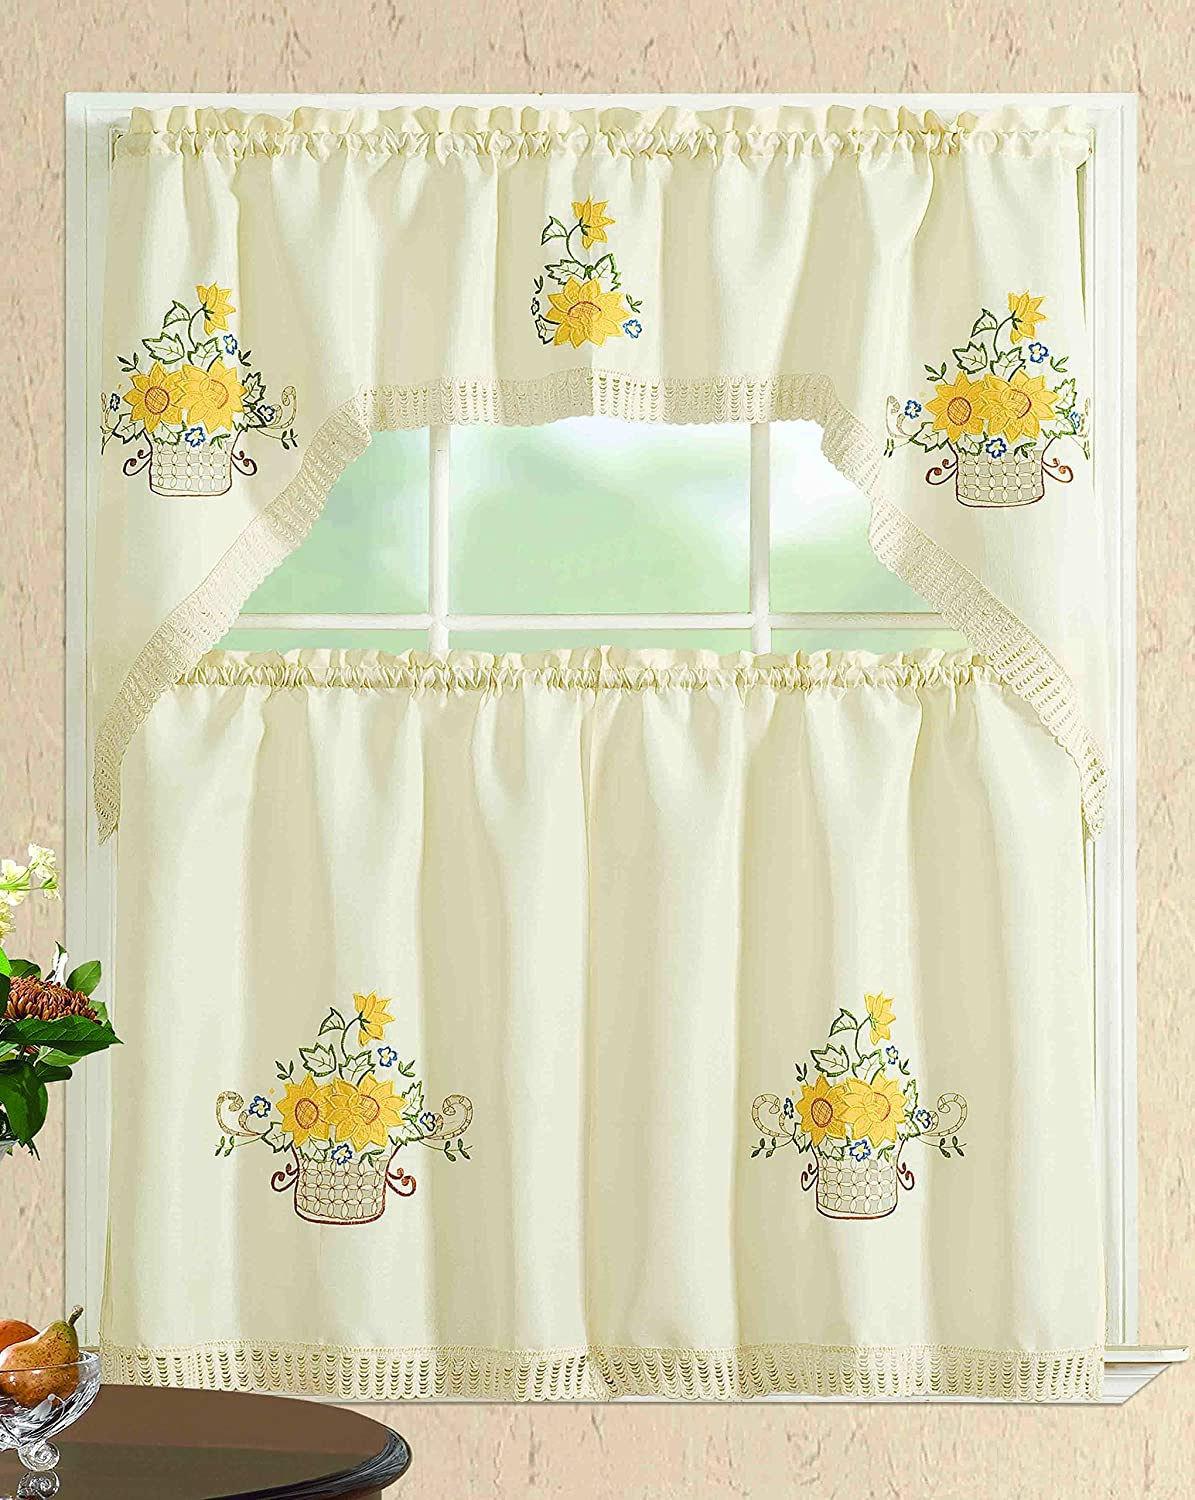 All American Collection Modern Contemporary 3pc Embroidered Home Kitchen Window Treatment Curtain Set (Swag Valance, Sunflower Basket)